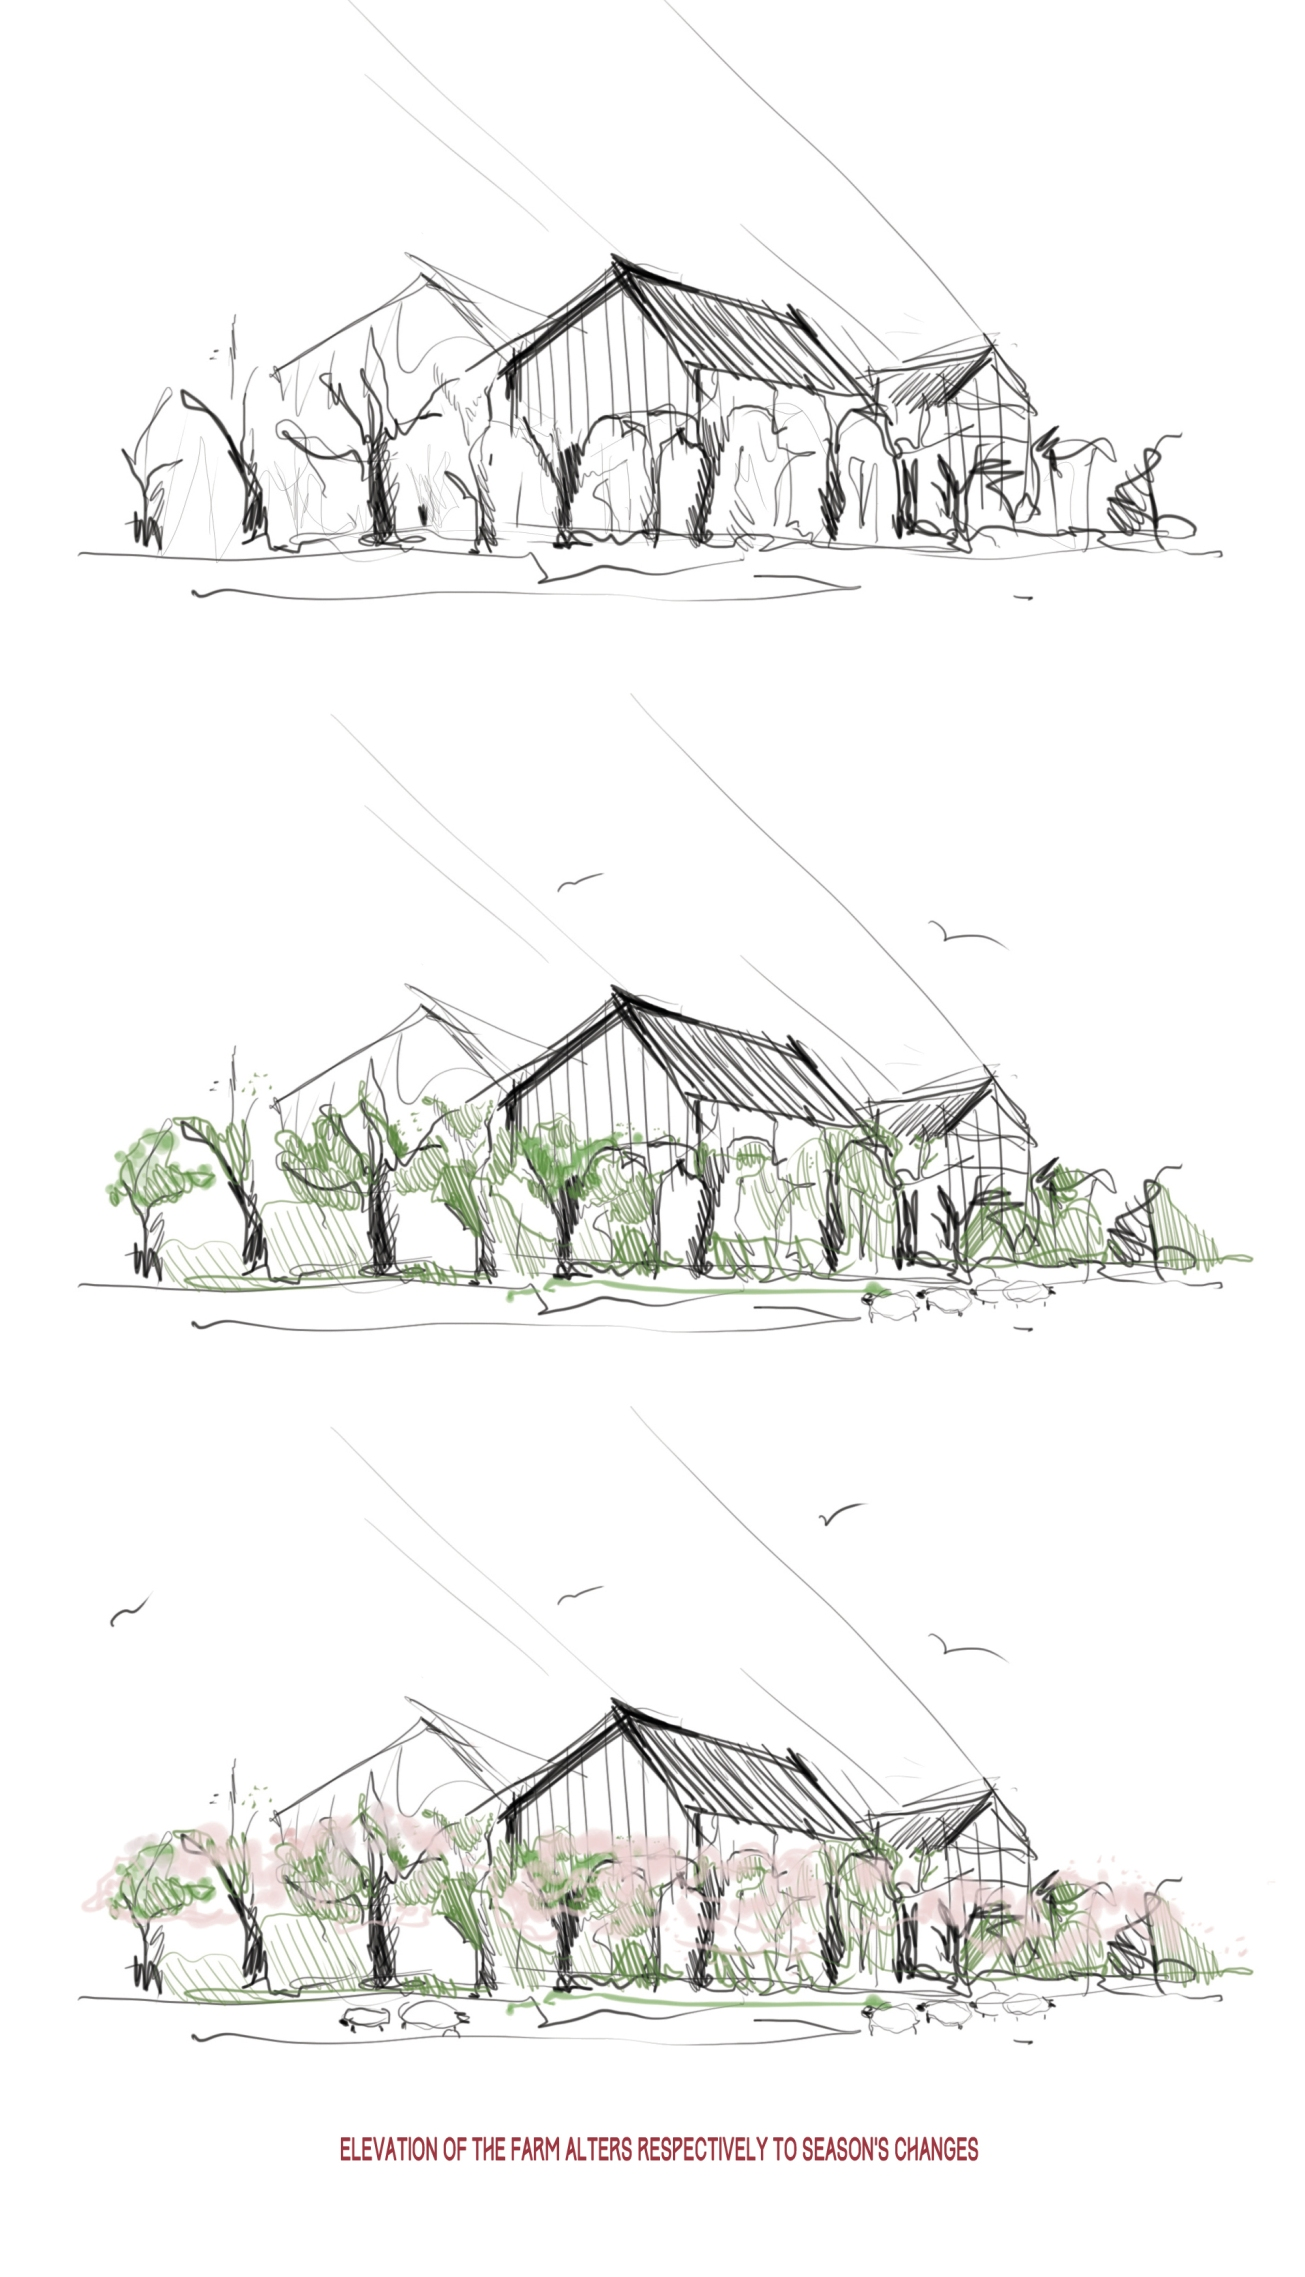 Orchard farm with cider factory,Sonia Dubois,student,4th year,University of Arts Poznan, bachelor of architecture_13